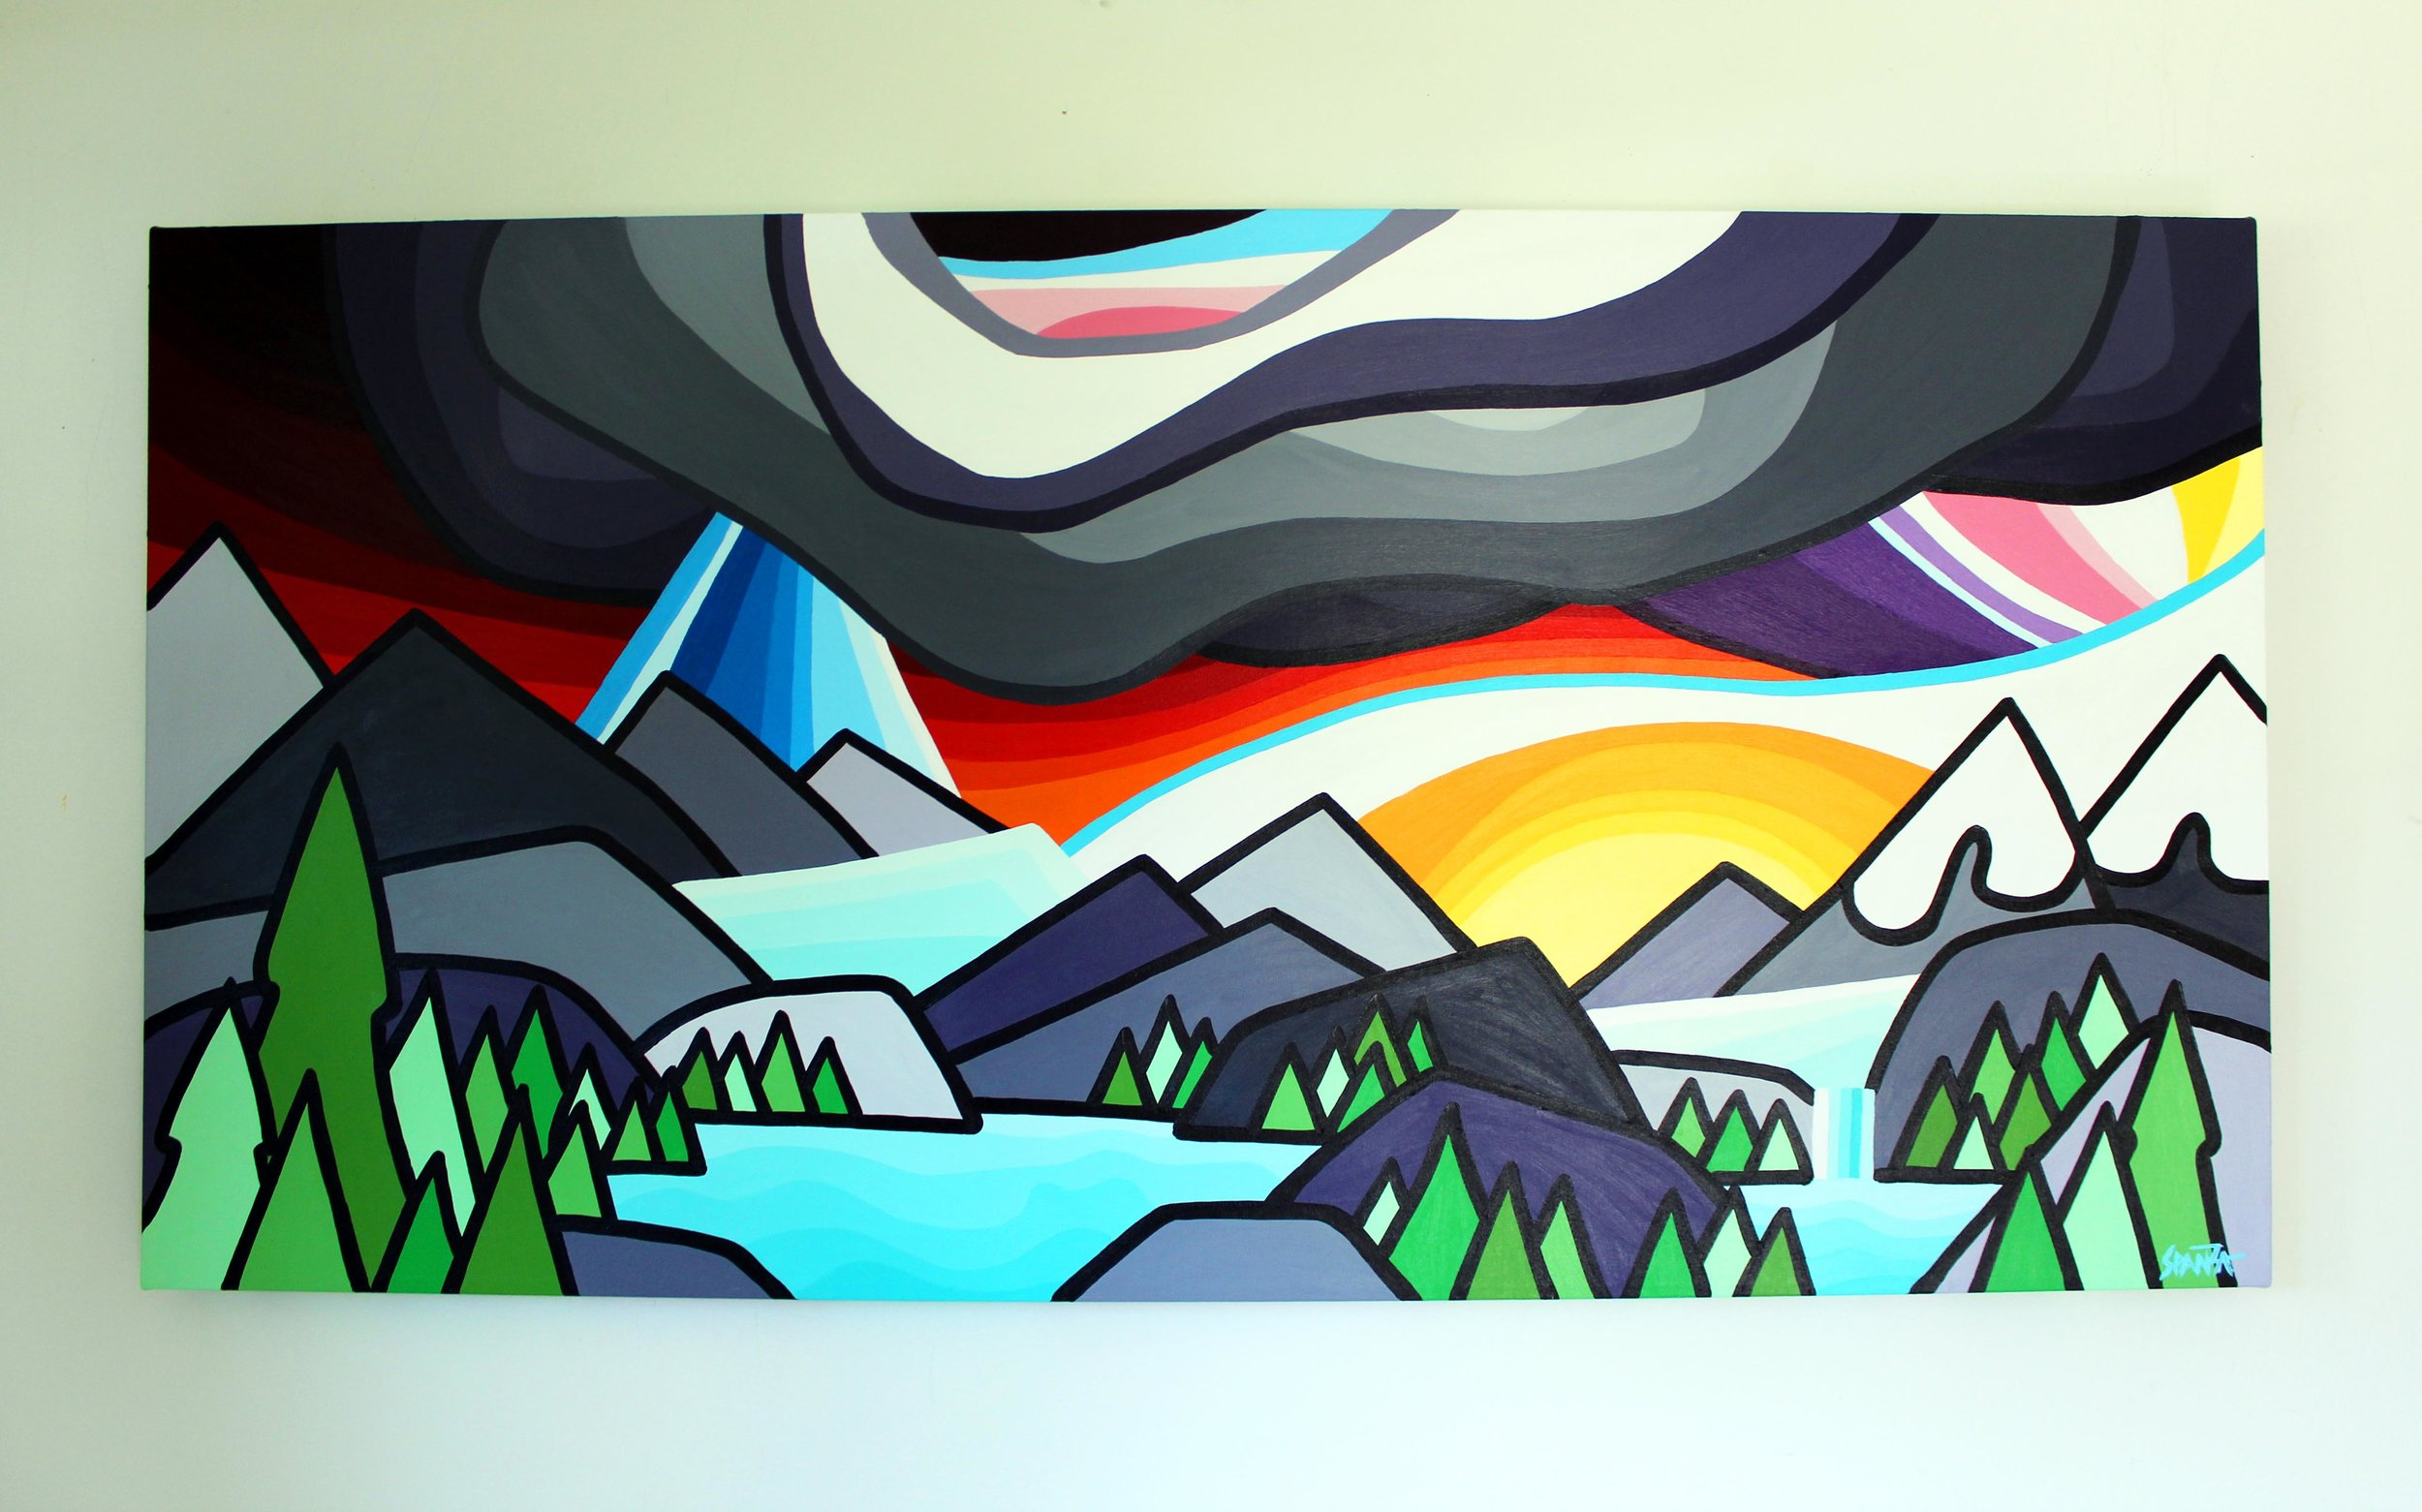 "Weather in the Mountains - Size: 24"" x 48"" acrylic on canvasPrice: SOLD"